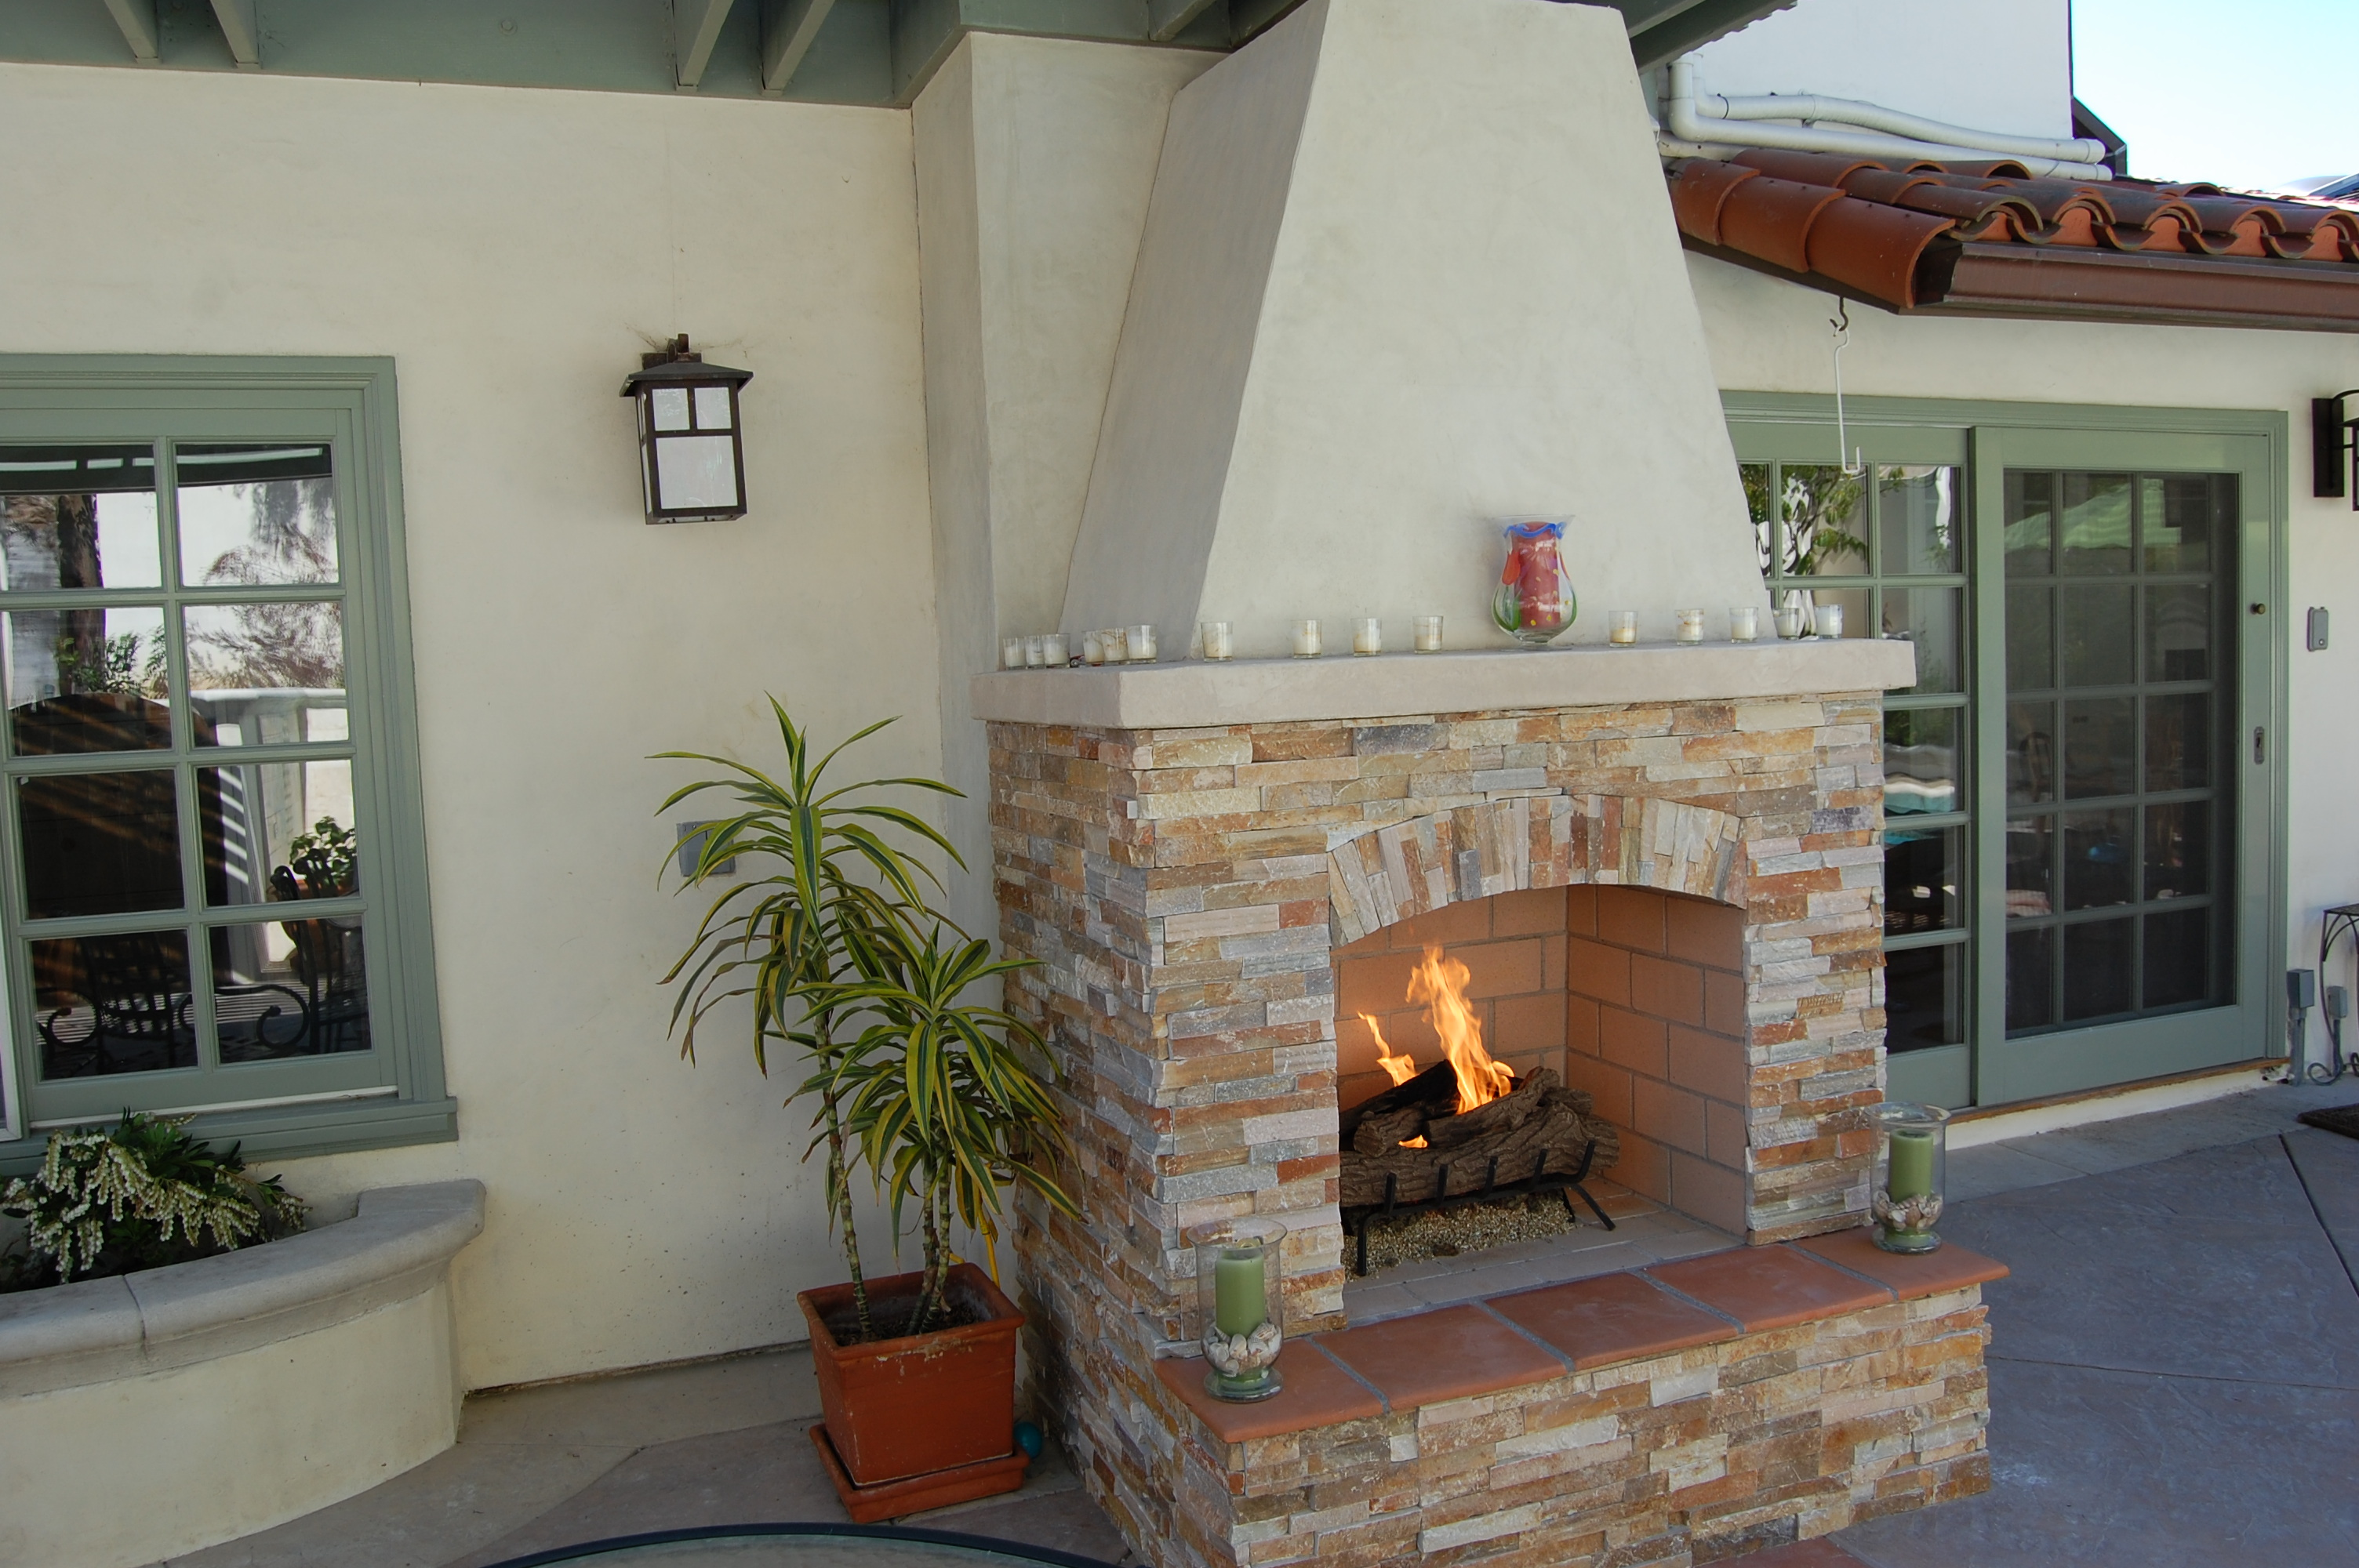 Spanish Style - Custom Fireplace Design in Orange County, California